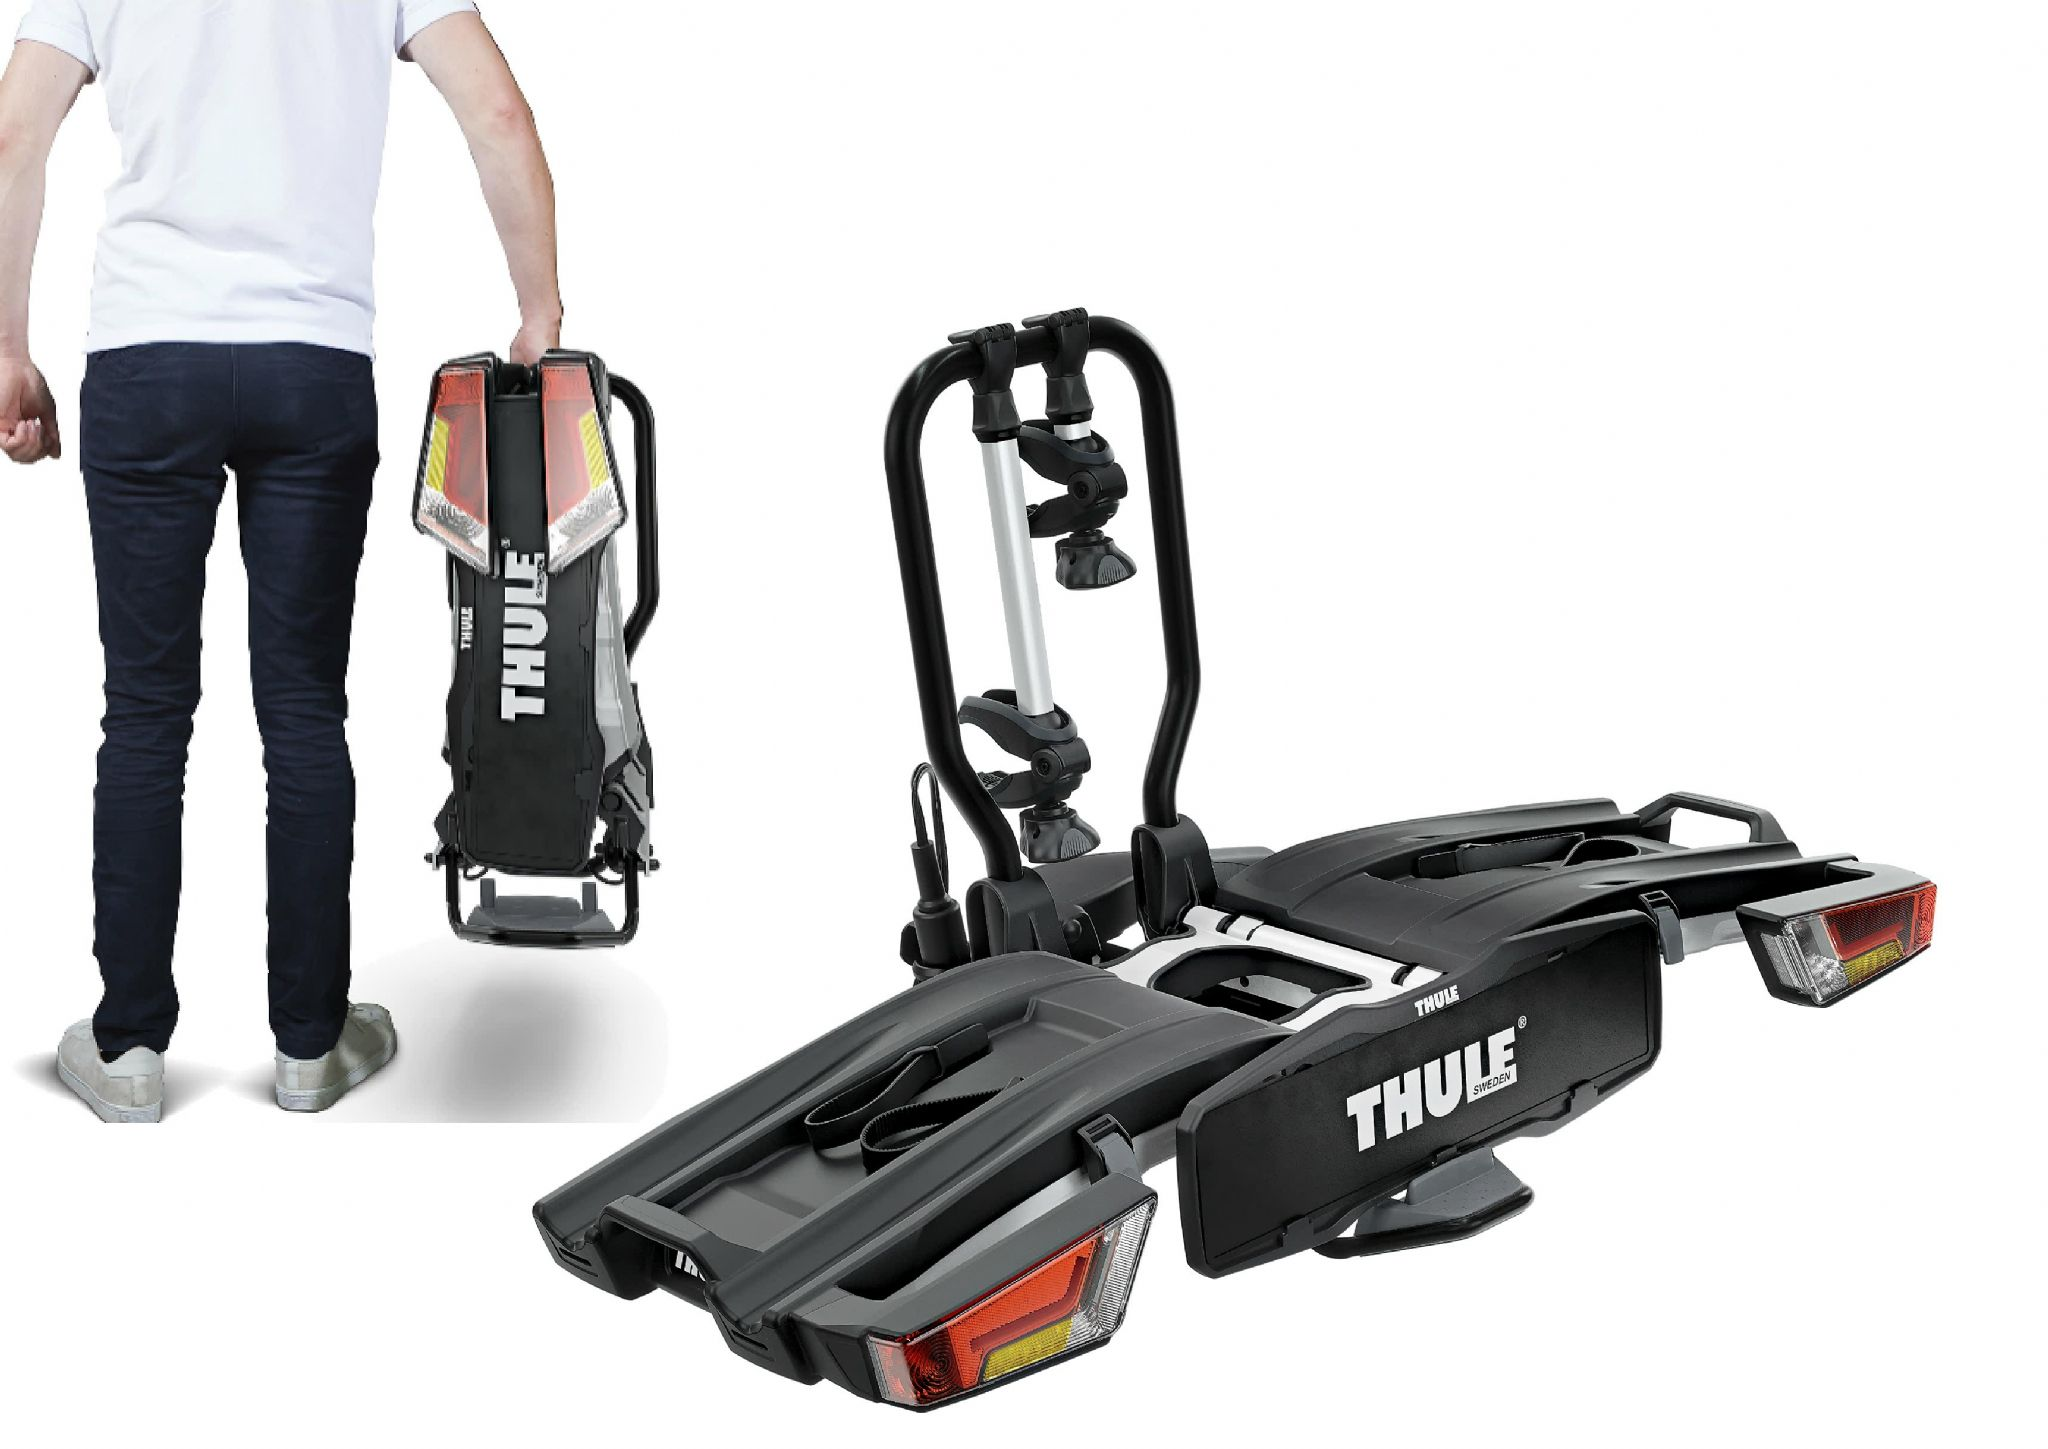 Thule 933 Easyfold 2 Bike Xt Cycle Carrier Rack Tow Bar